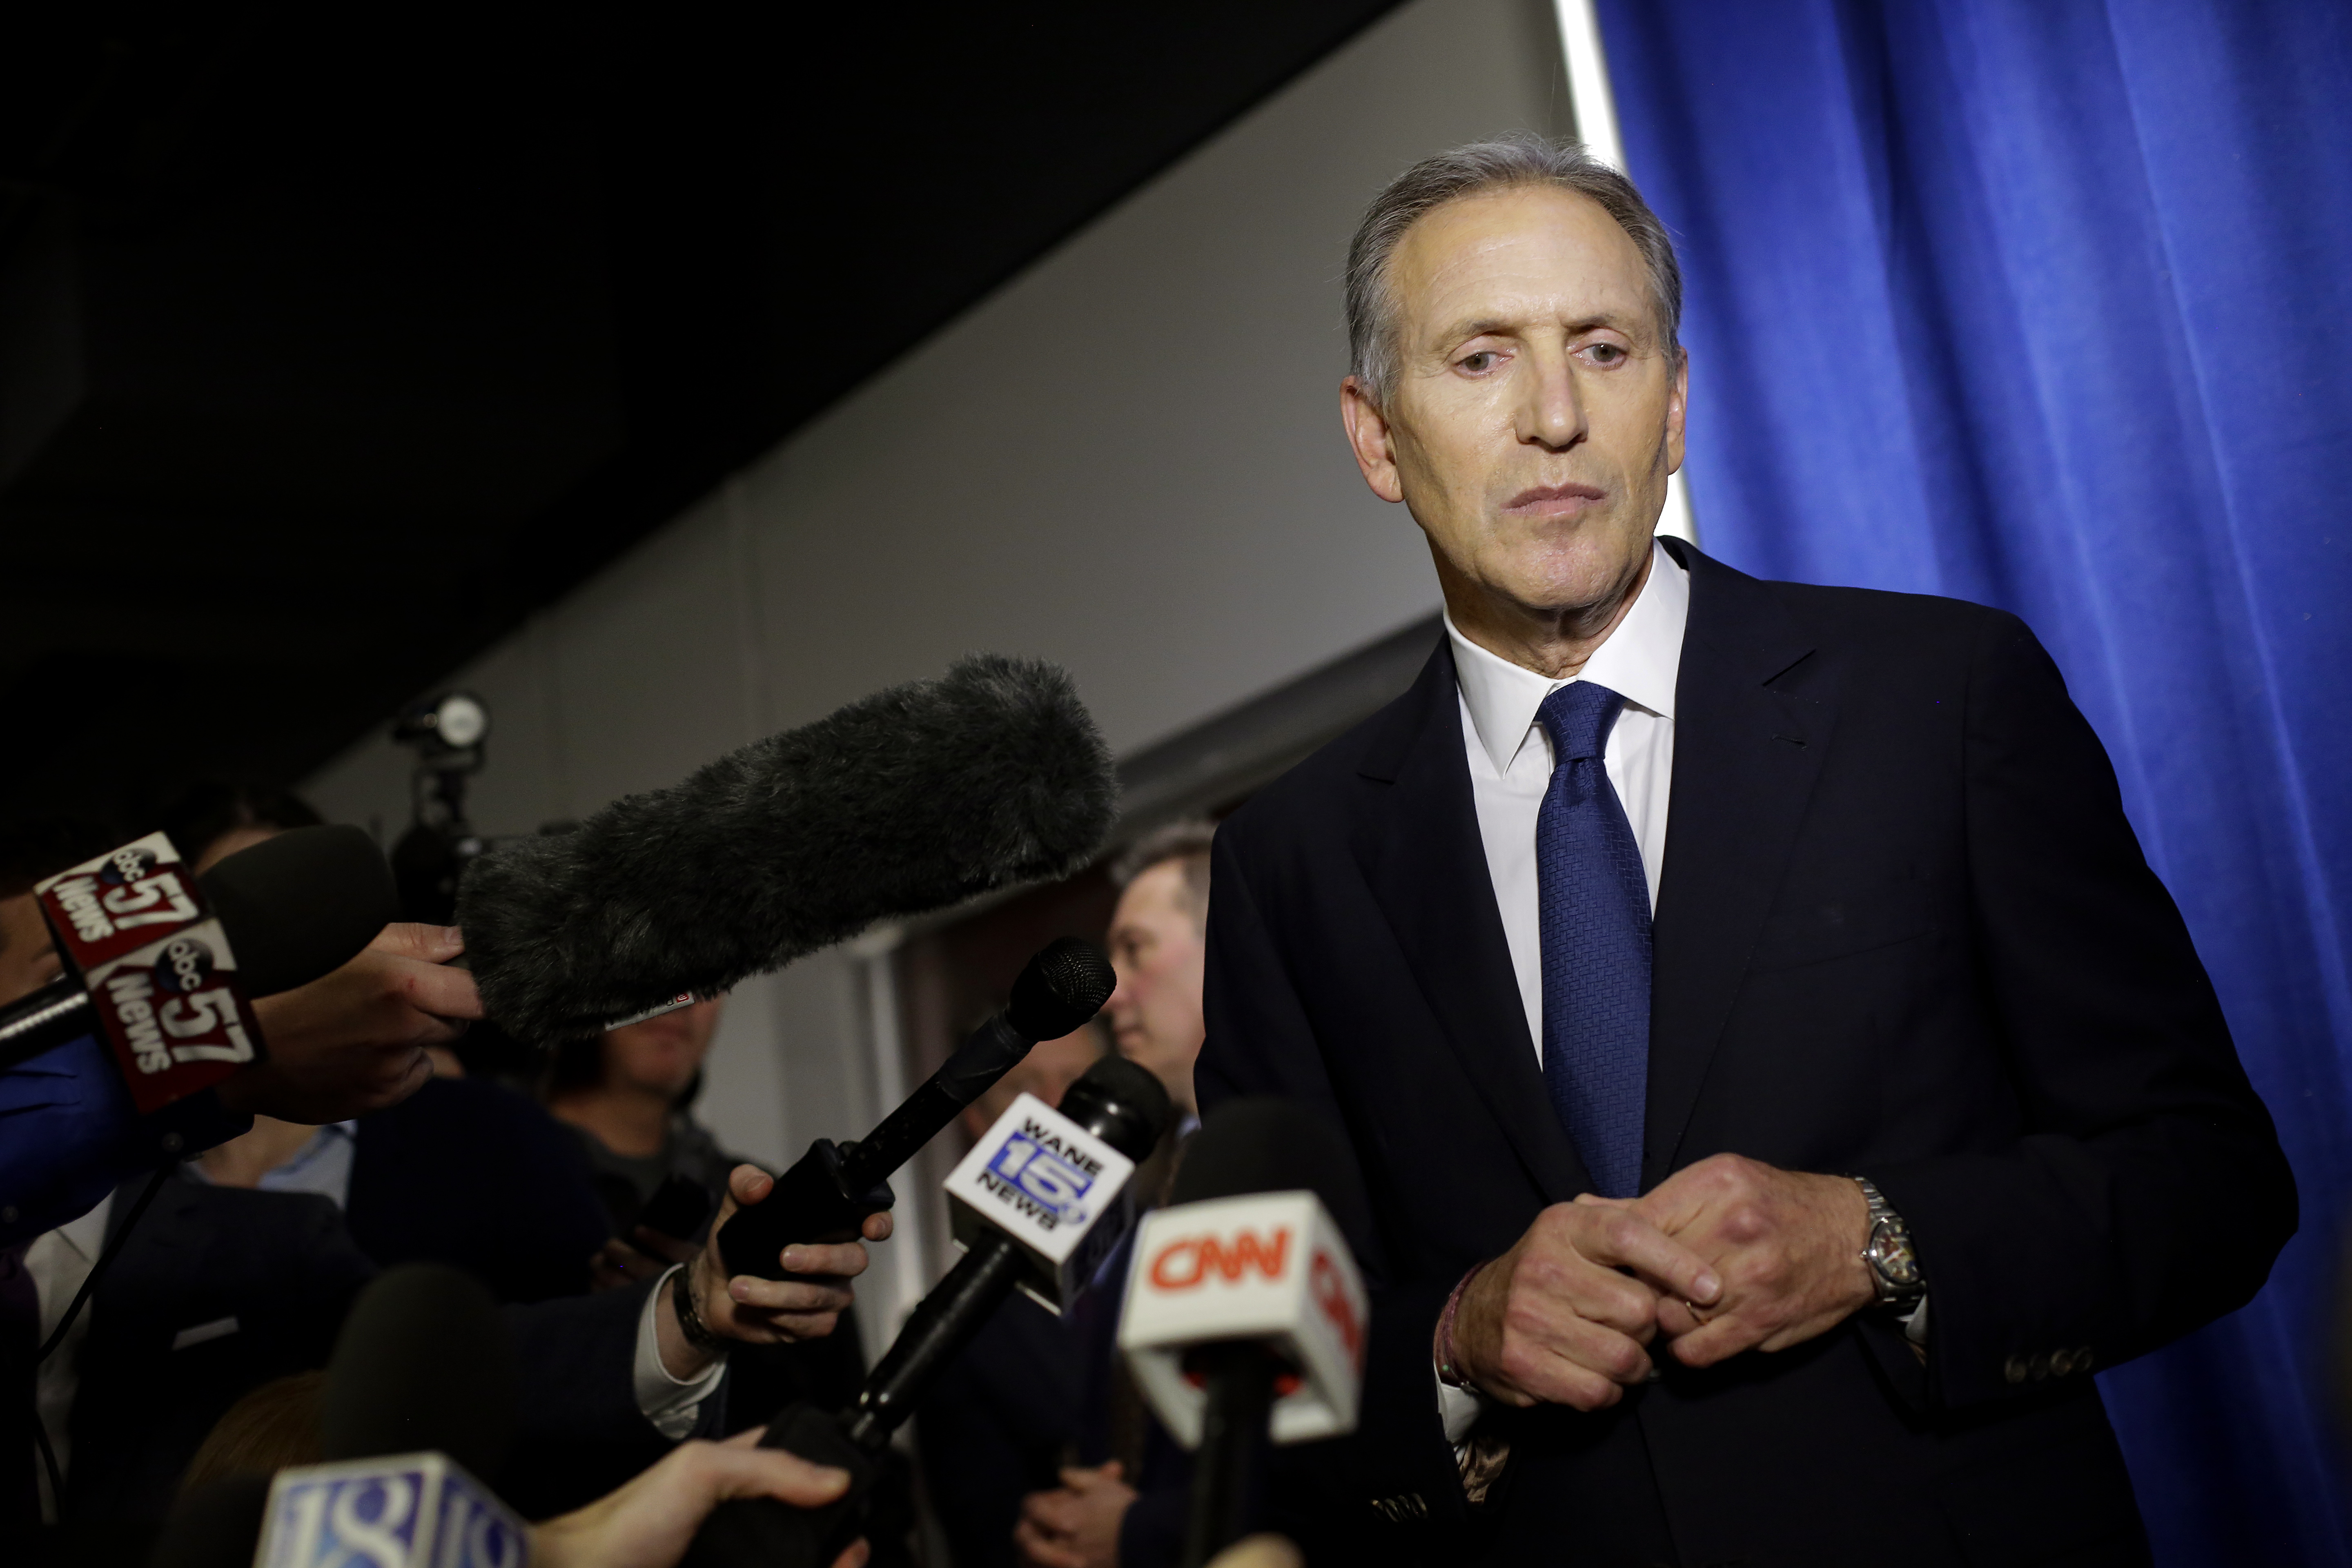 Howard Schultz's CNN town hall revealed the emptiness of elite centrism